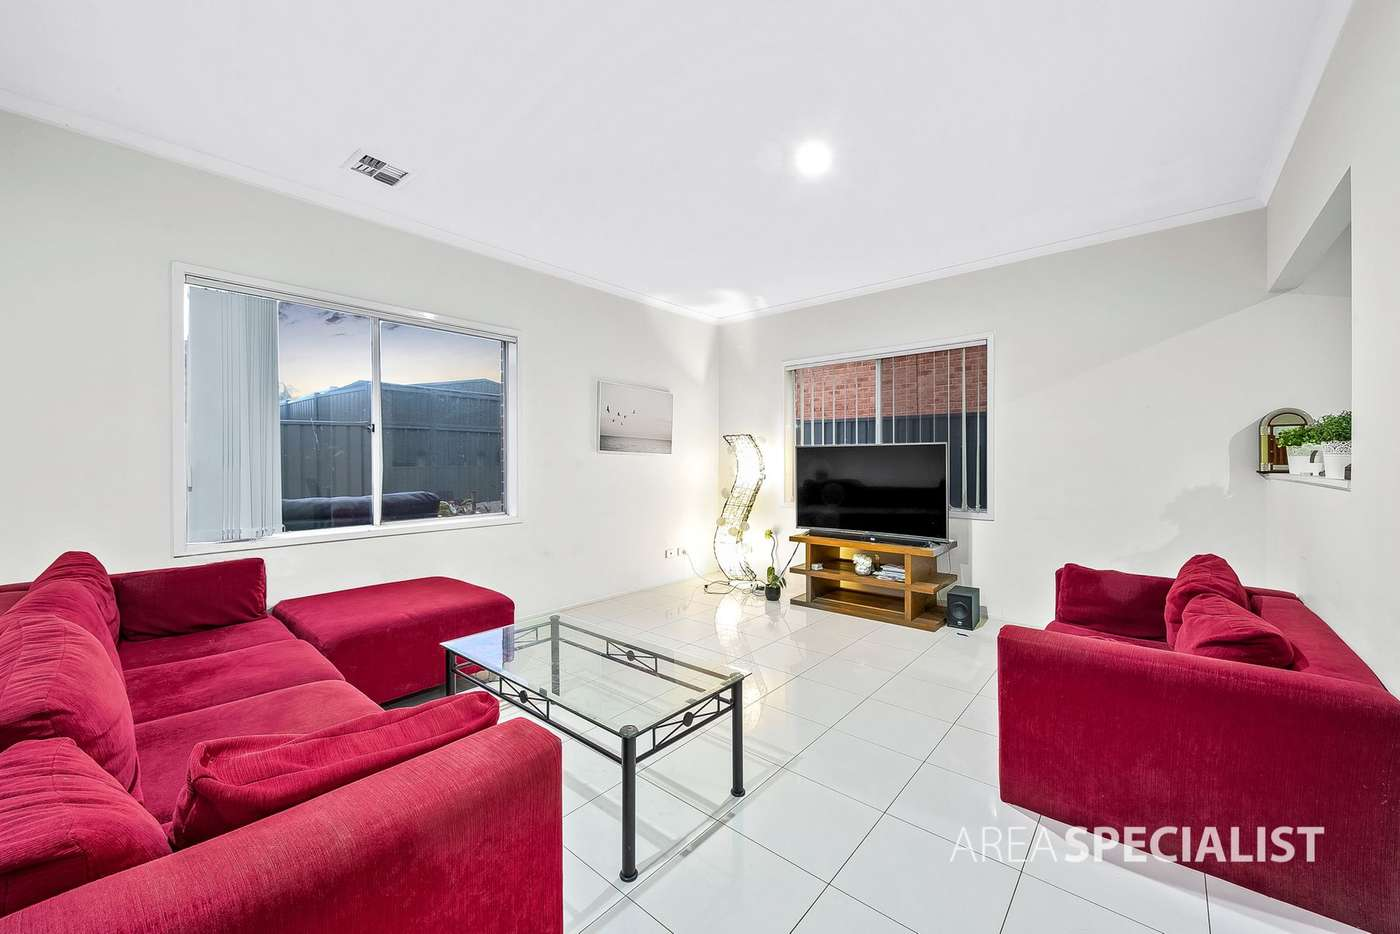 Sixth view of Homely house listing, 57 Dobell Crescent, Caroline Springs VIC 3023